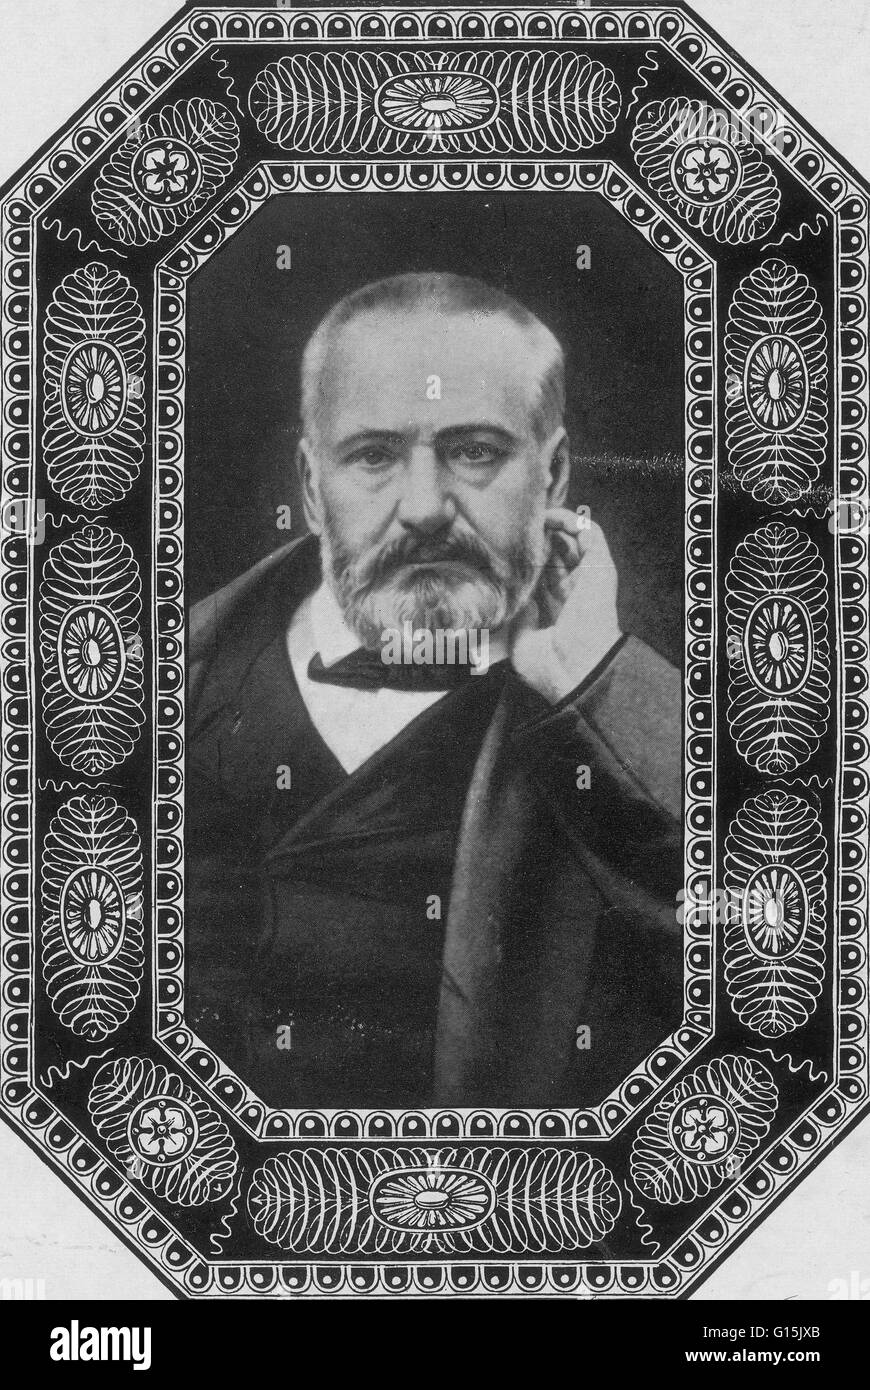 Victor Marie Hugo (February 26, 1802 - May 22, 1885) was a French poet, novelist, and dramatist of the Romantic - Stock Image